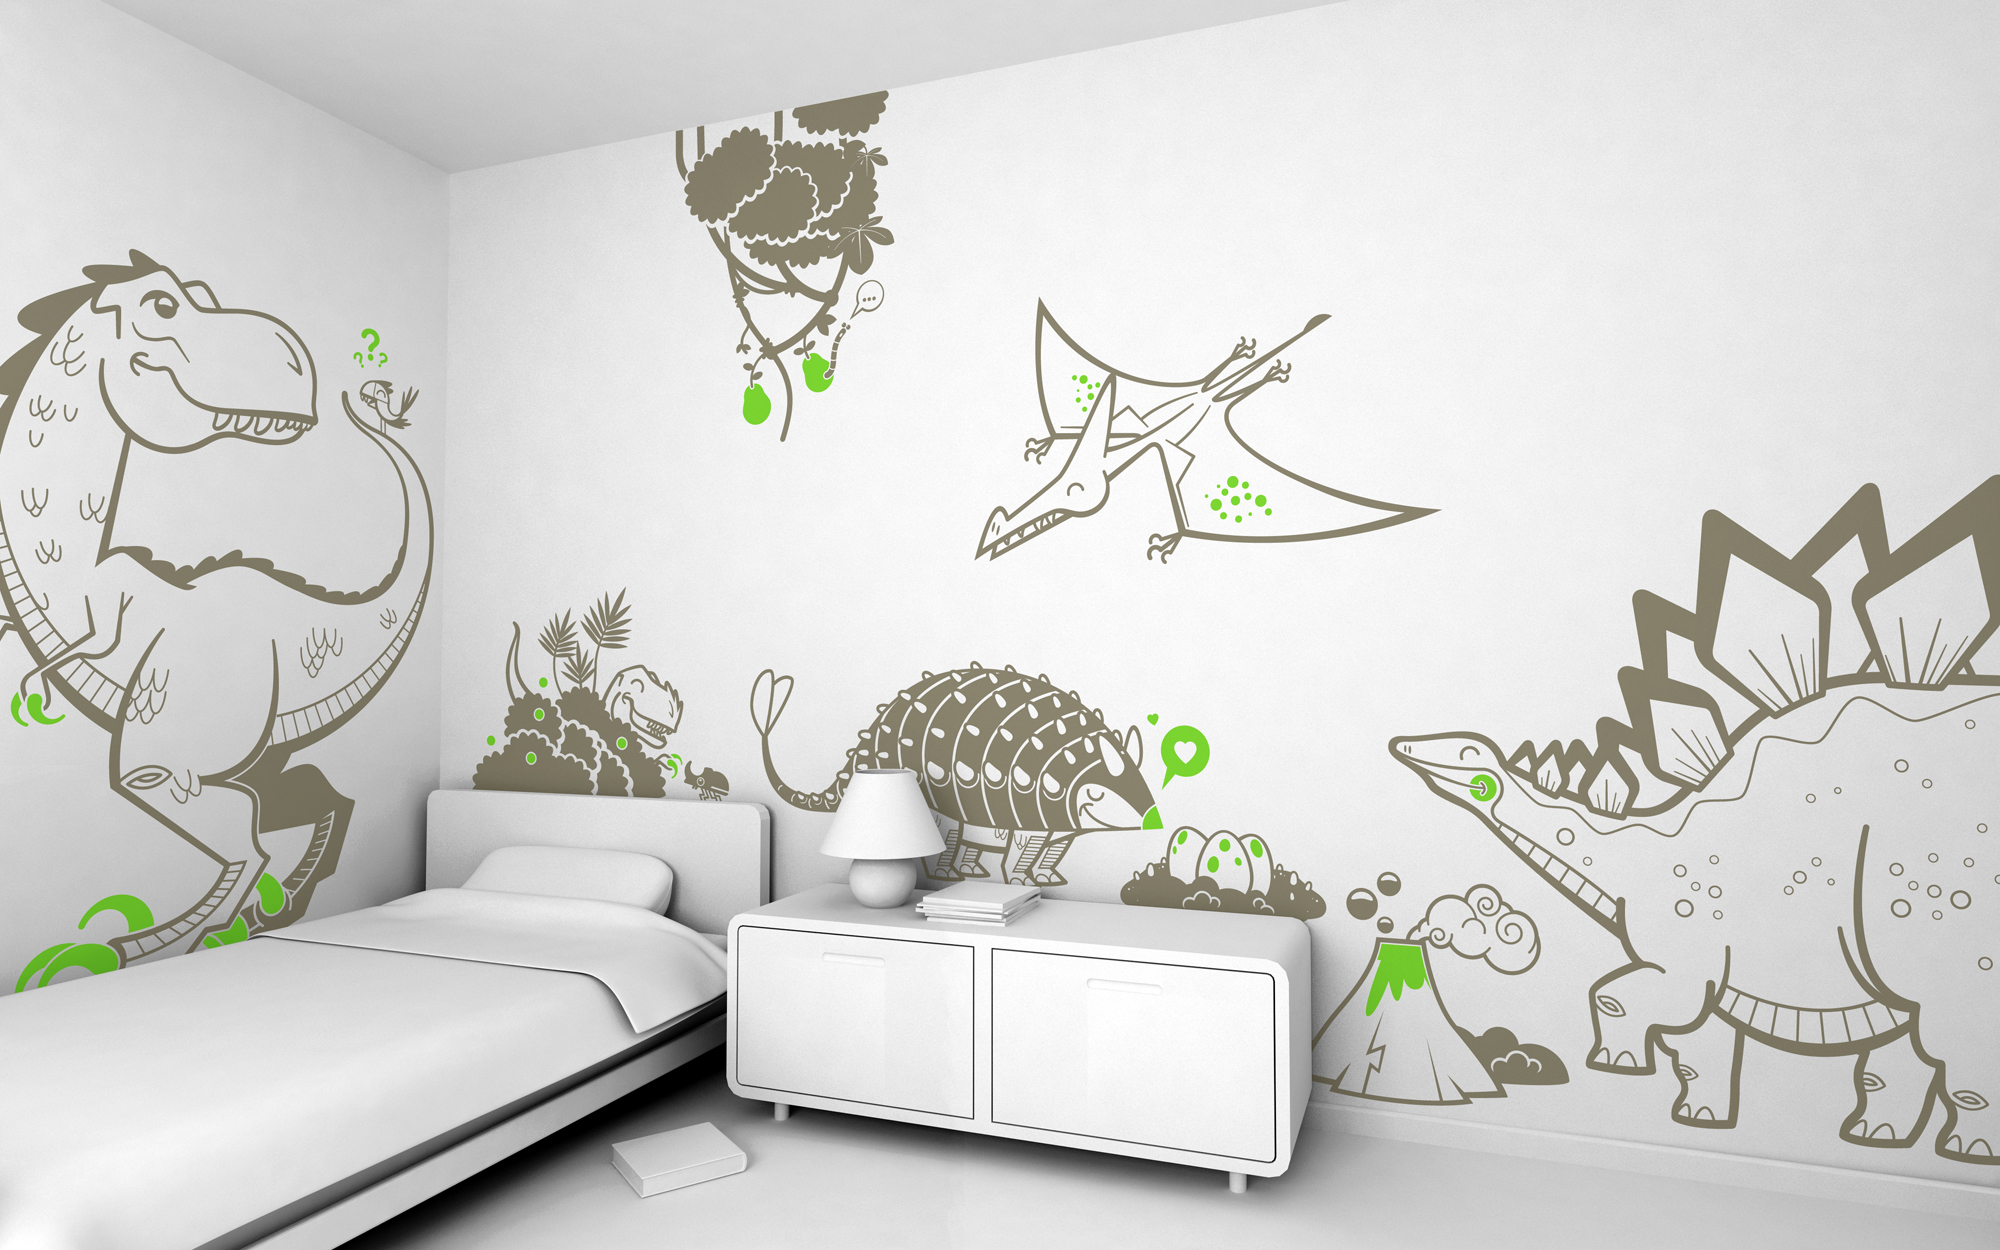 Giant kids wall decals by e glue studio at for Donde se venden vinilos decorativos